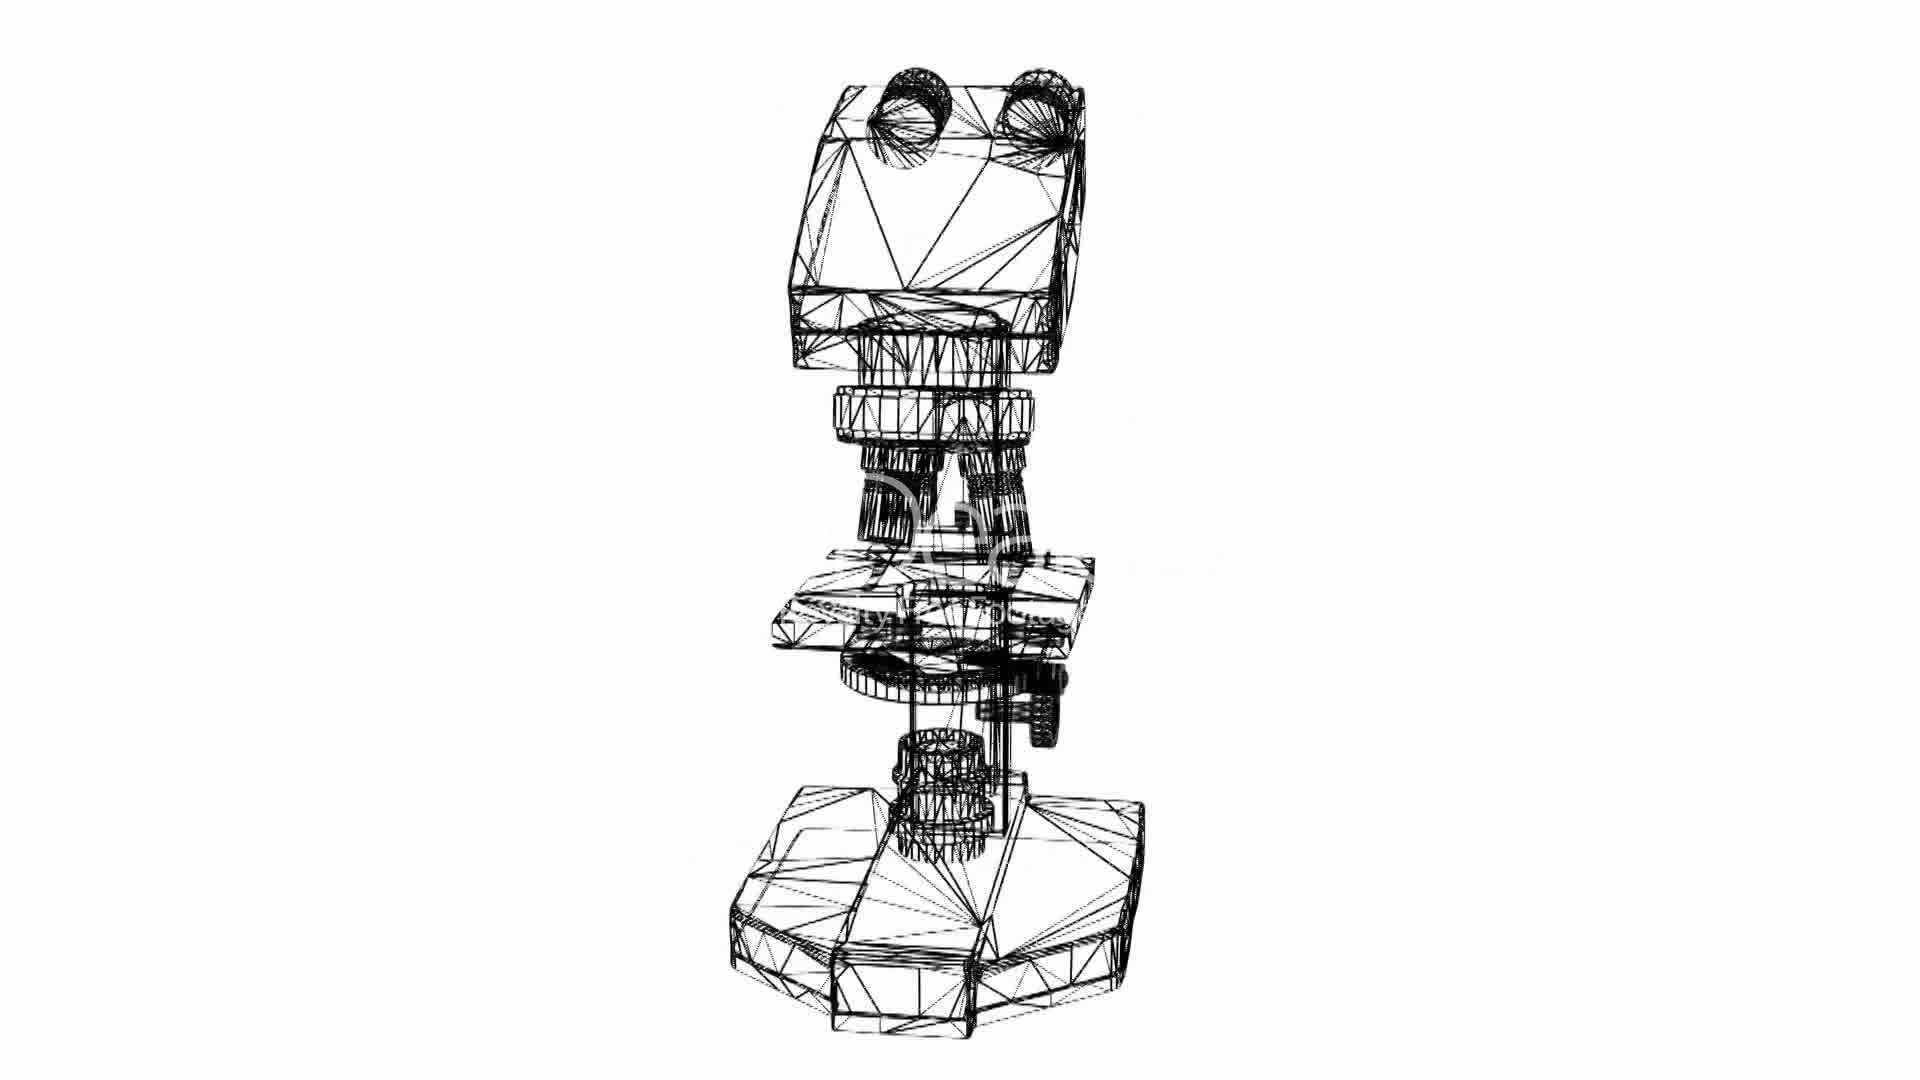 microscope in aboratory research equipment grid mesh sketch structure   royalty